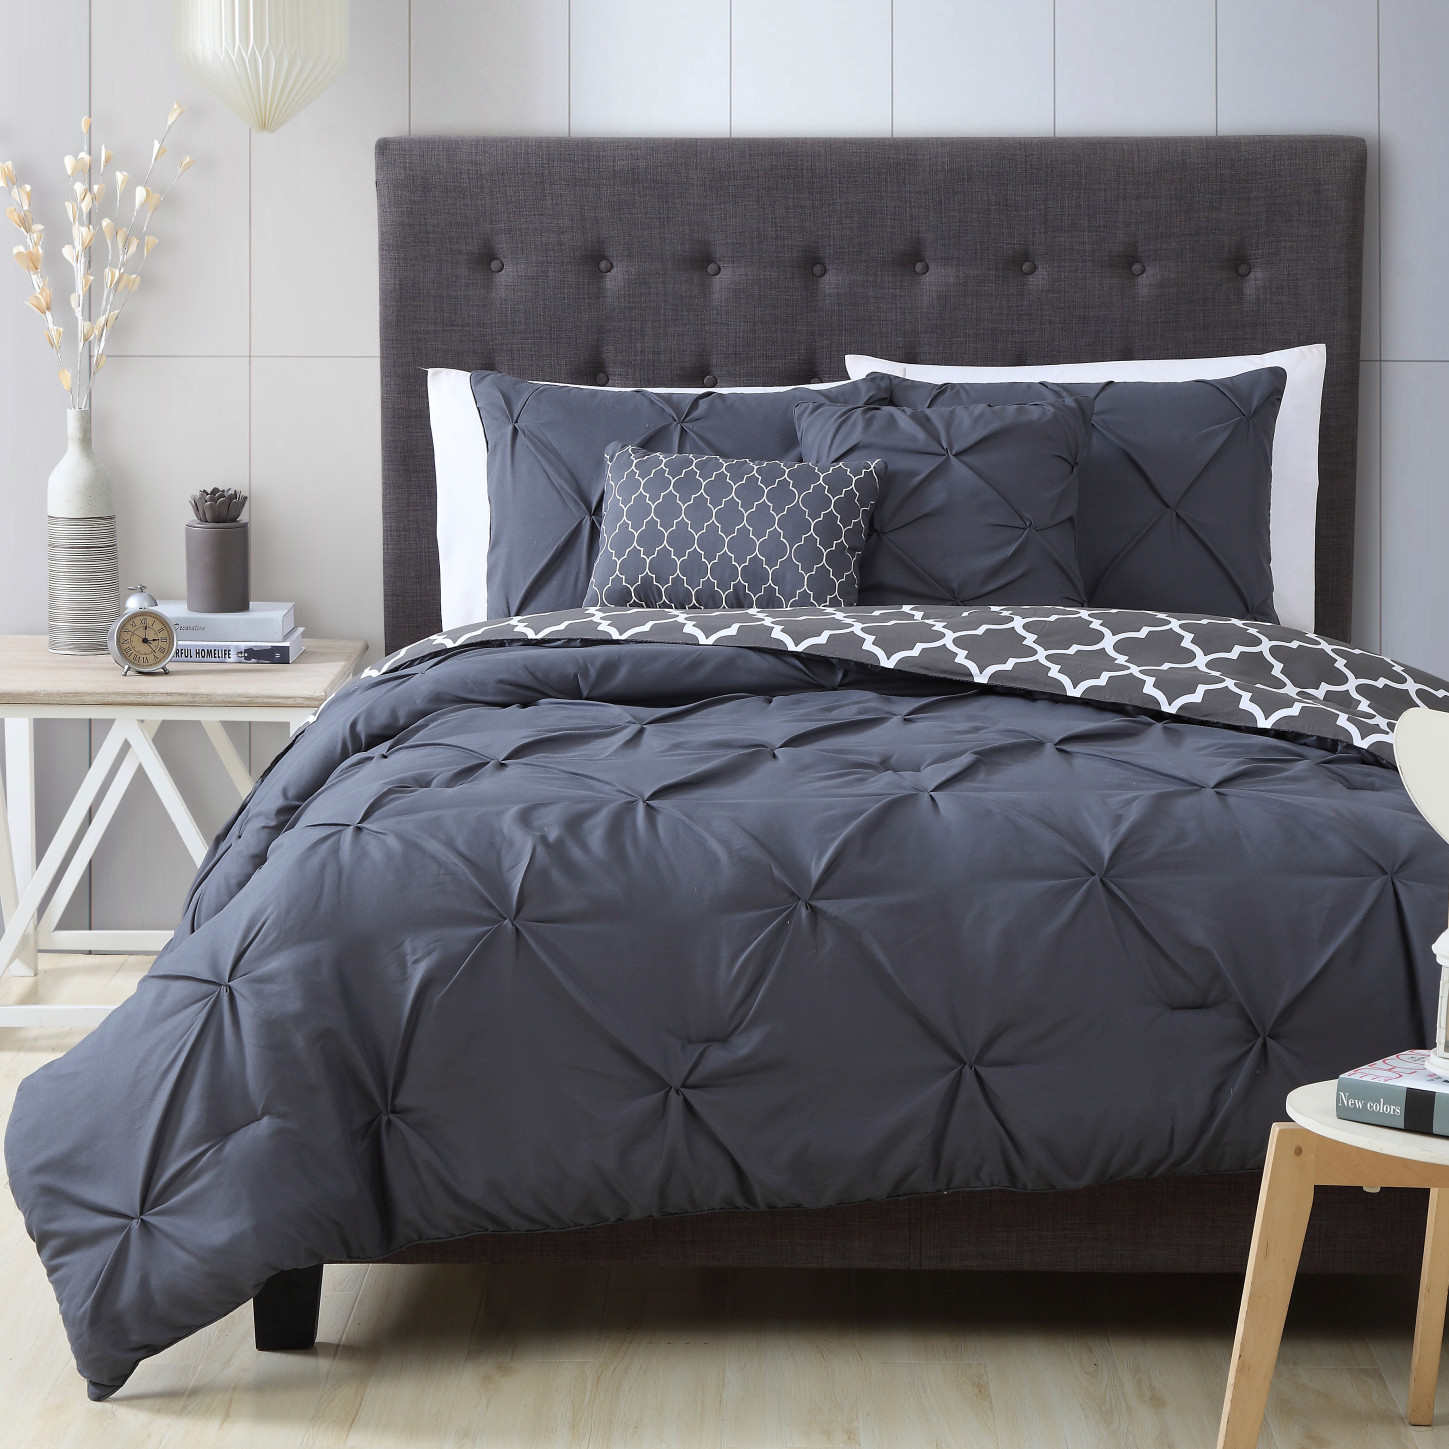 King Size Duvet Covers | Queen Size Bedding Sets | Sears Comforters